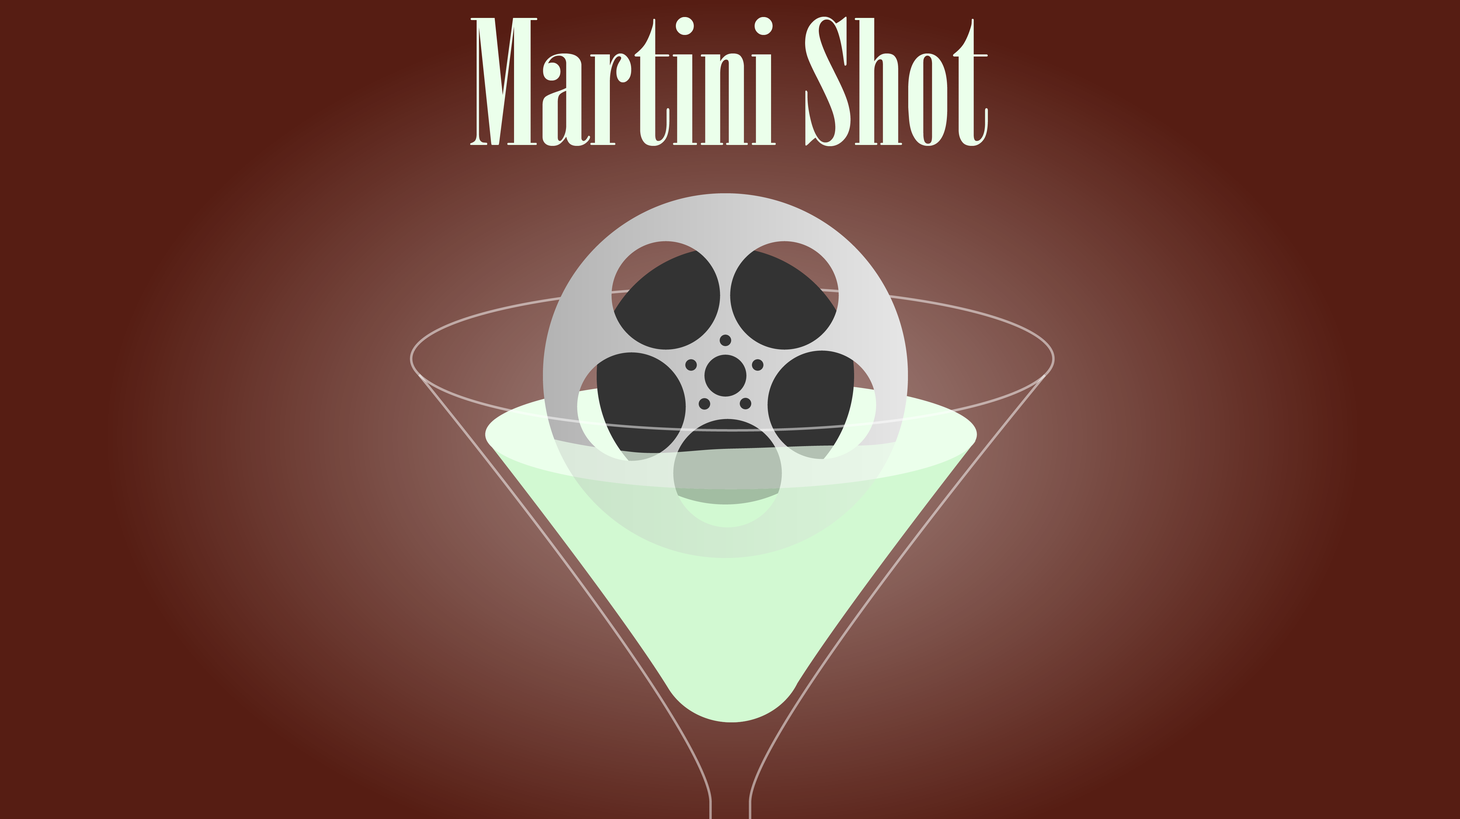 This is Rob Long and on today's Martini Shot I download the DirecTV Now app to watch the HBO Go app and Showtime Anytime app, but what I needed to do was download the regular DirecTV app to watch the HBO Now app. I think.